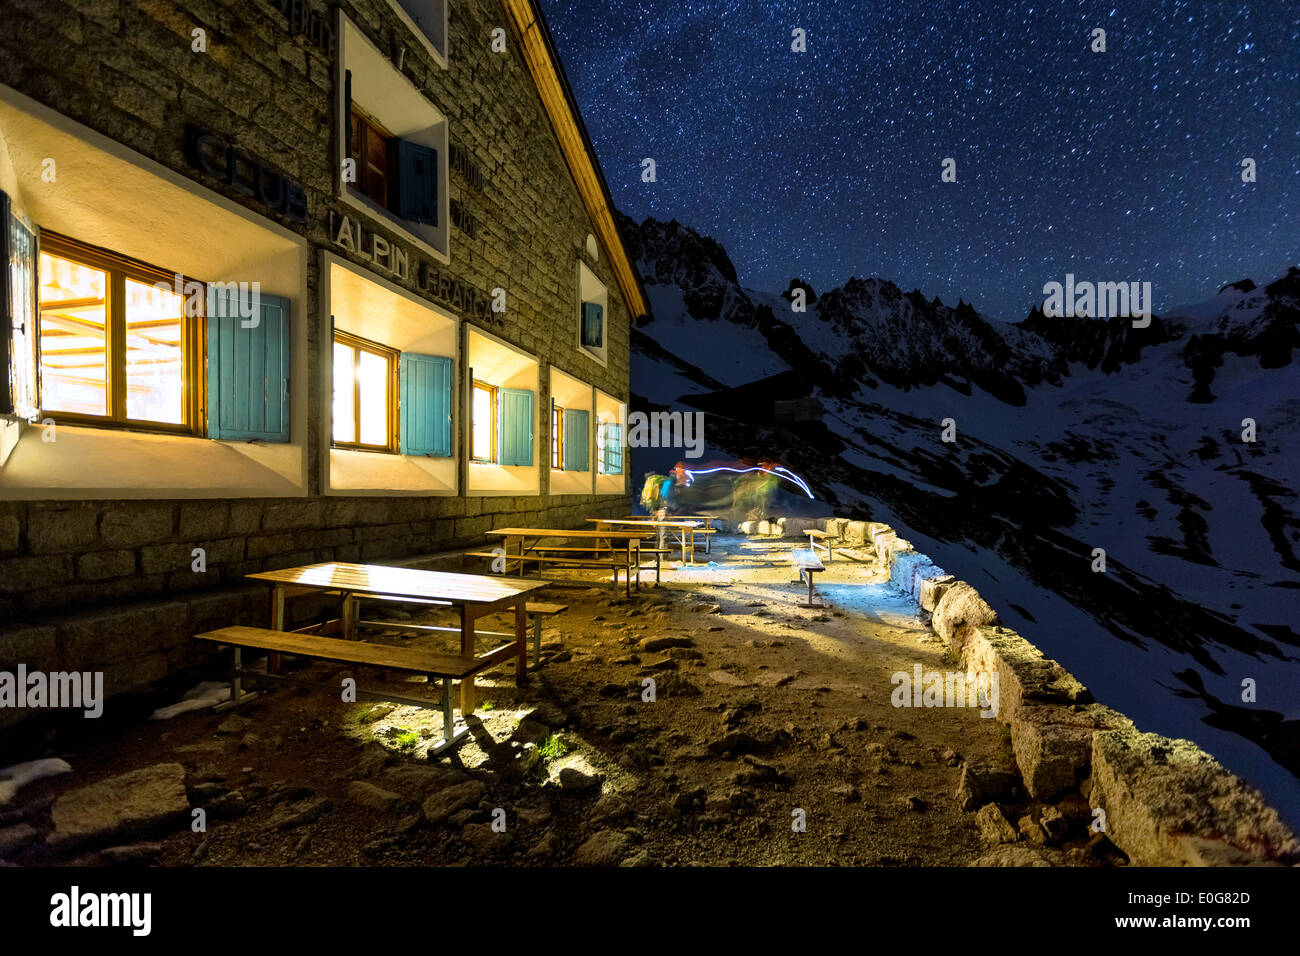 Star and light trails at Couvercle hut near Chamonix, France, Alps, EU - Stock Image